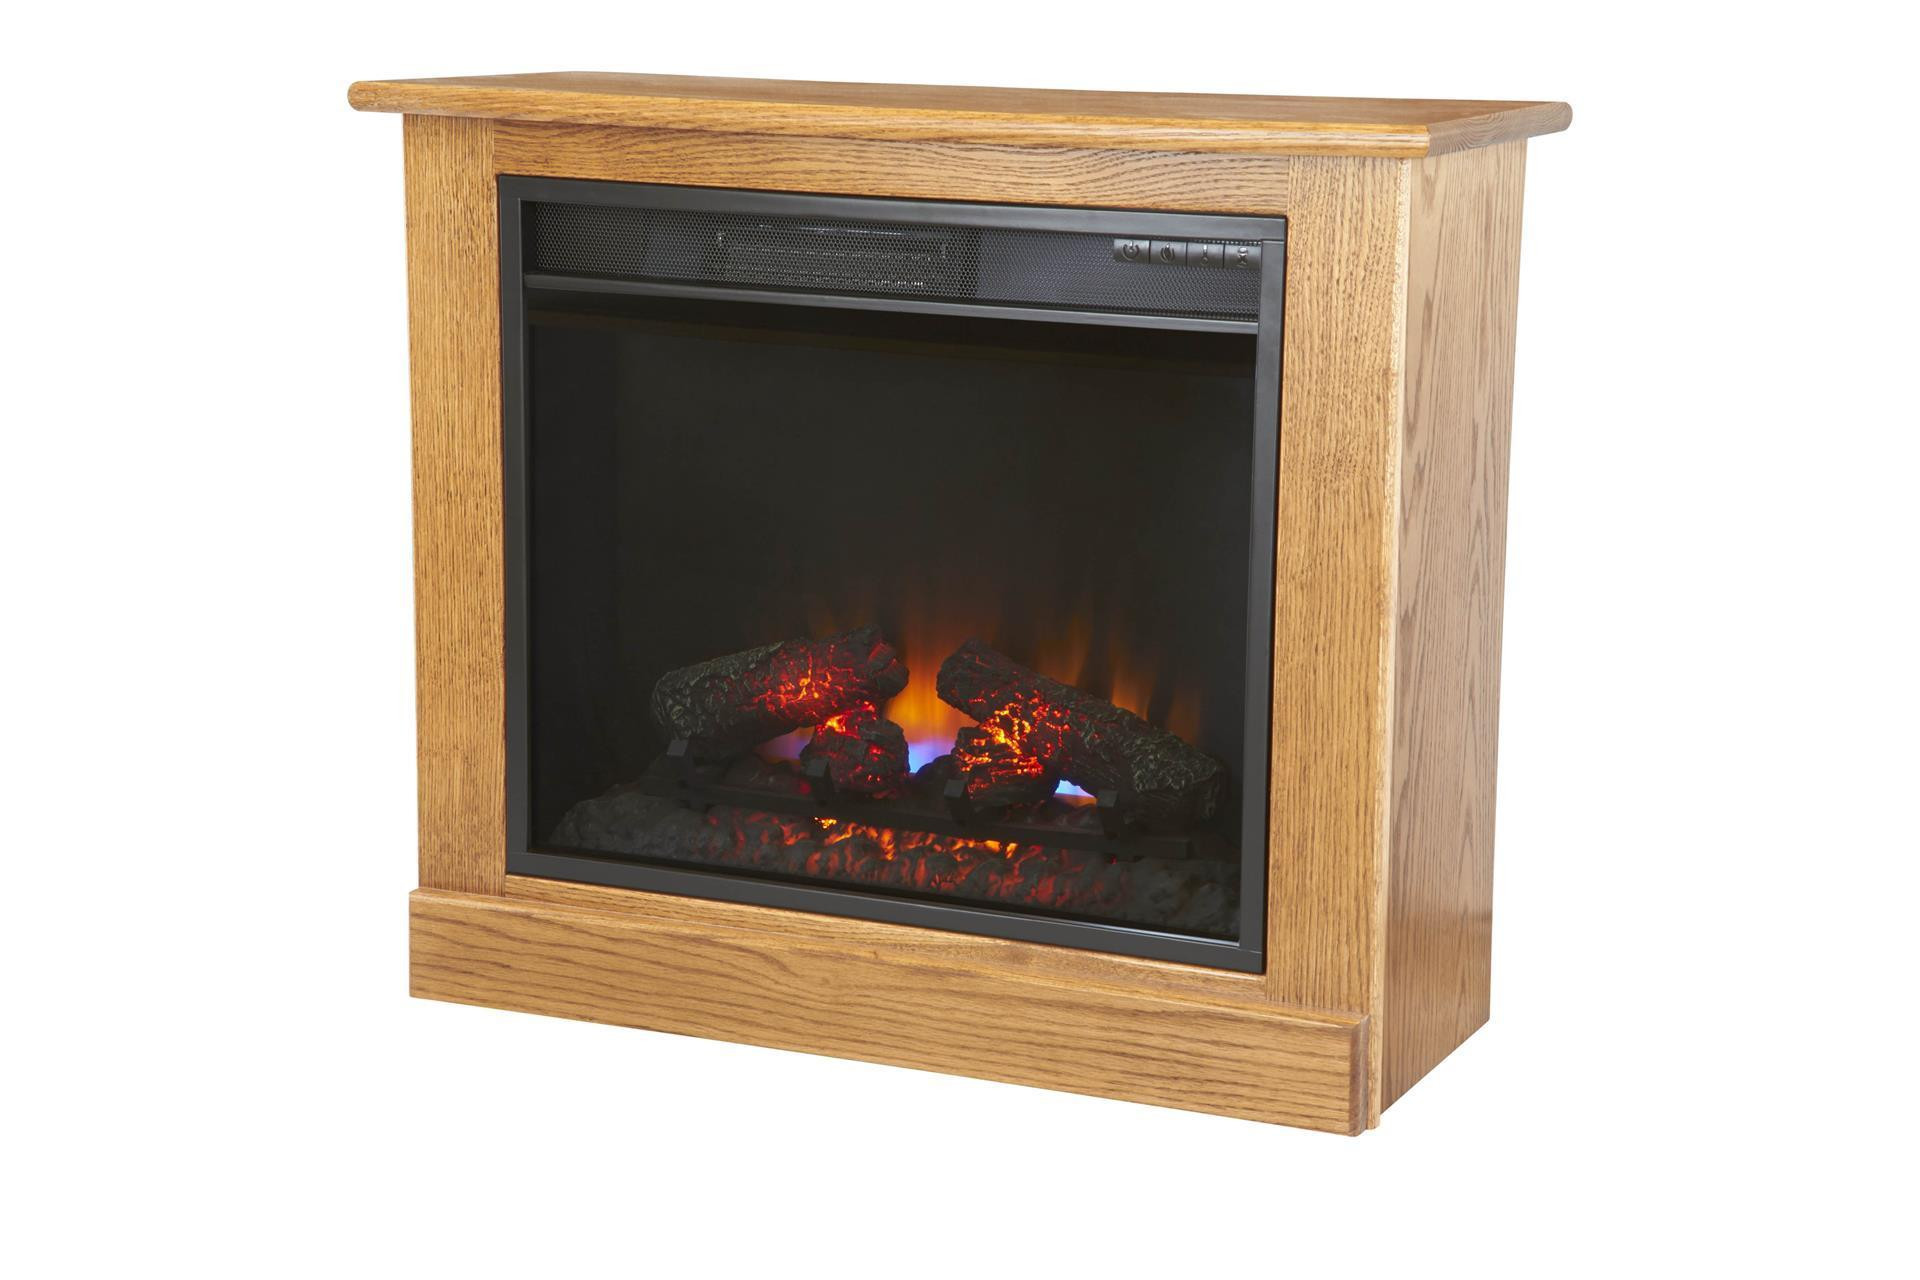 Best ideas about Amish Fireplace Heater . Save or Pin Portable Fireplace Heater on Casters from DutchCrafters Amish Now.